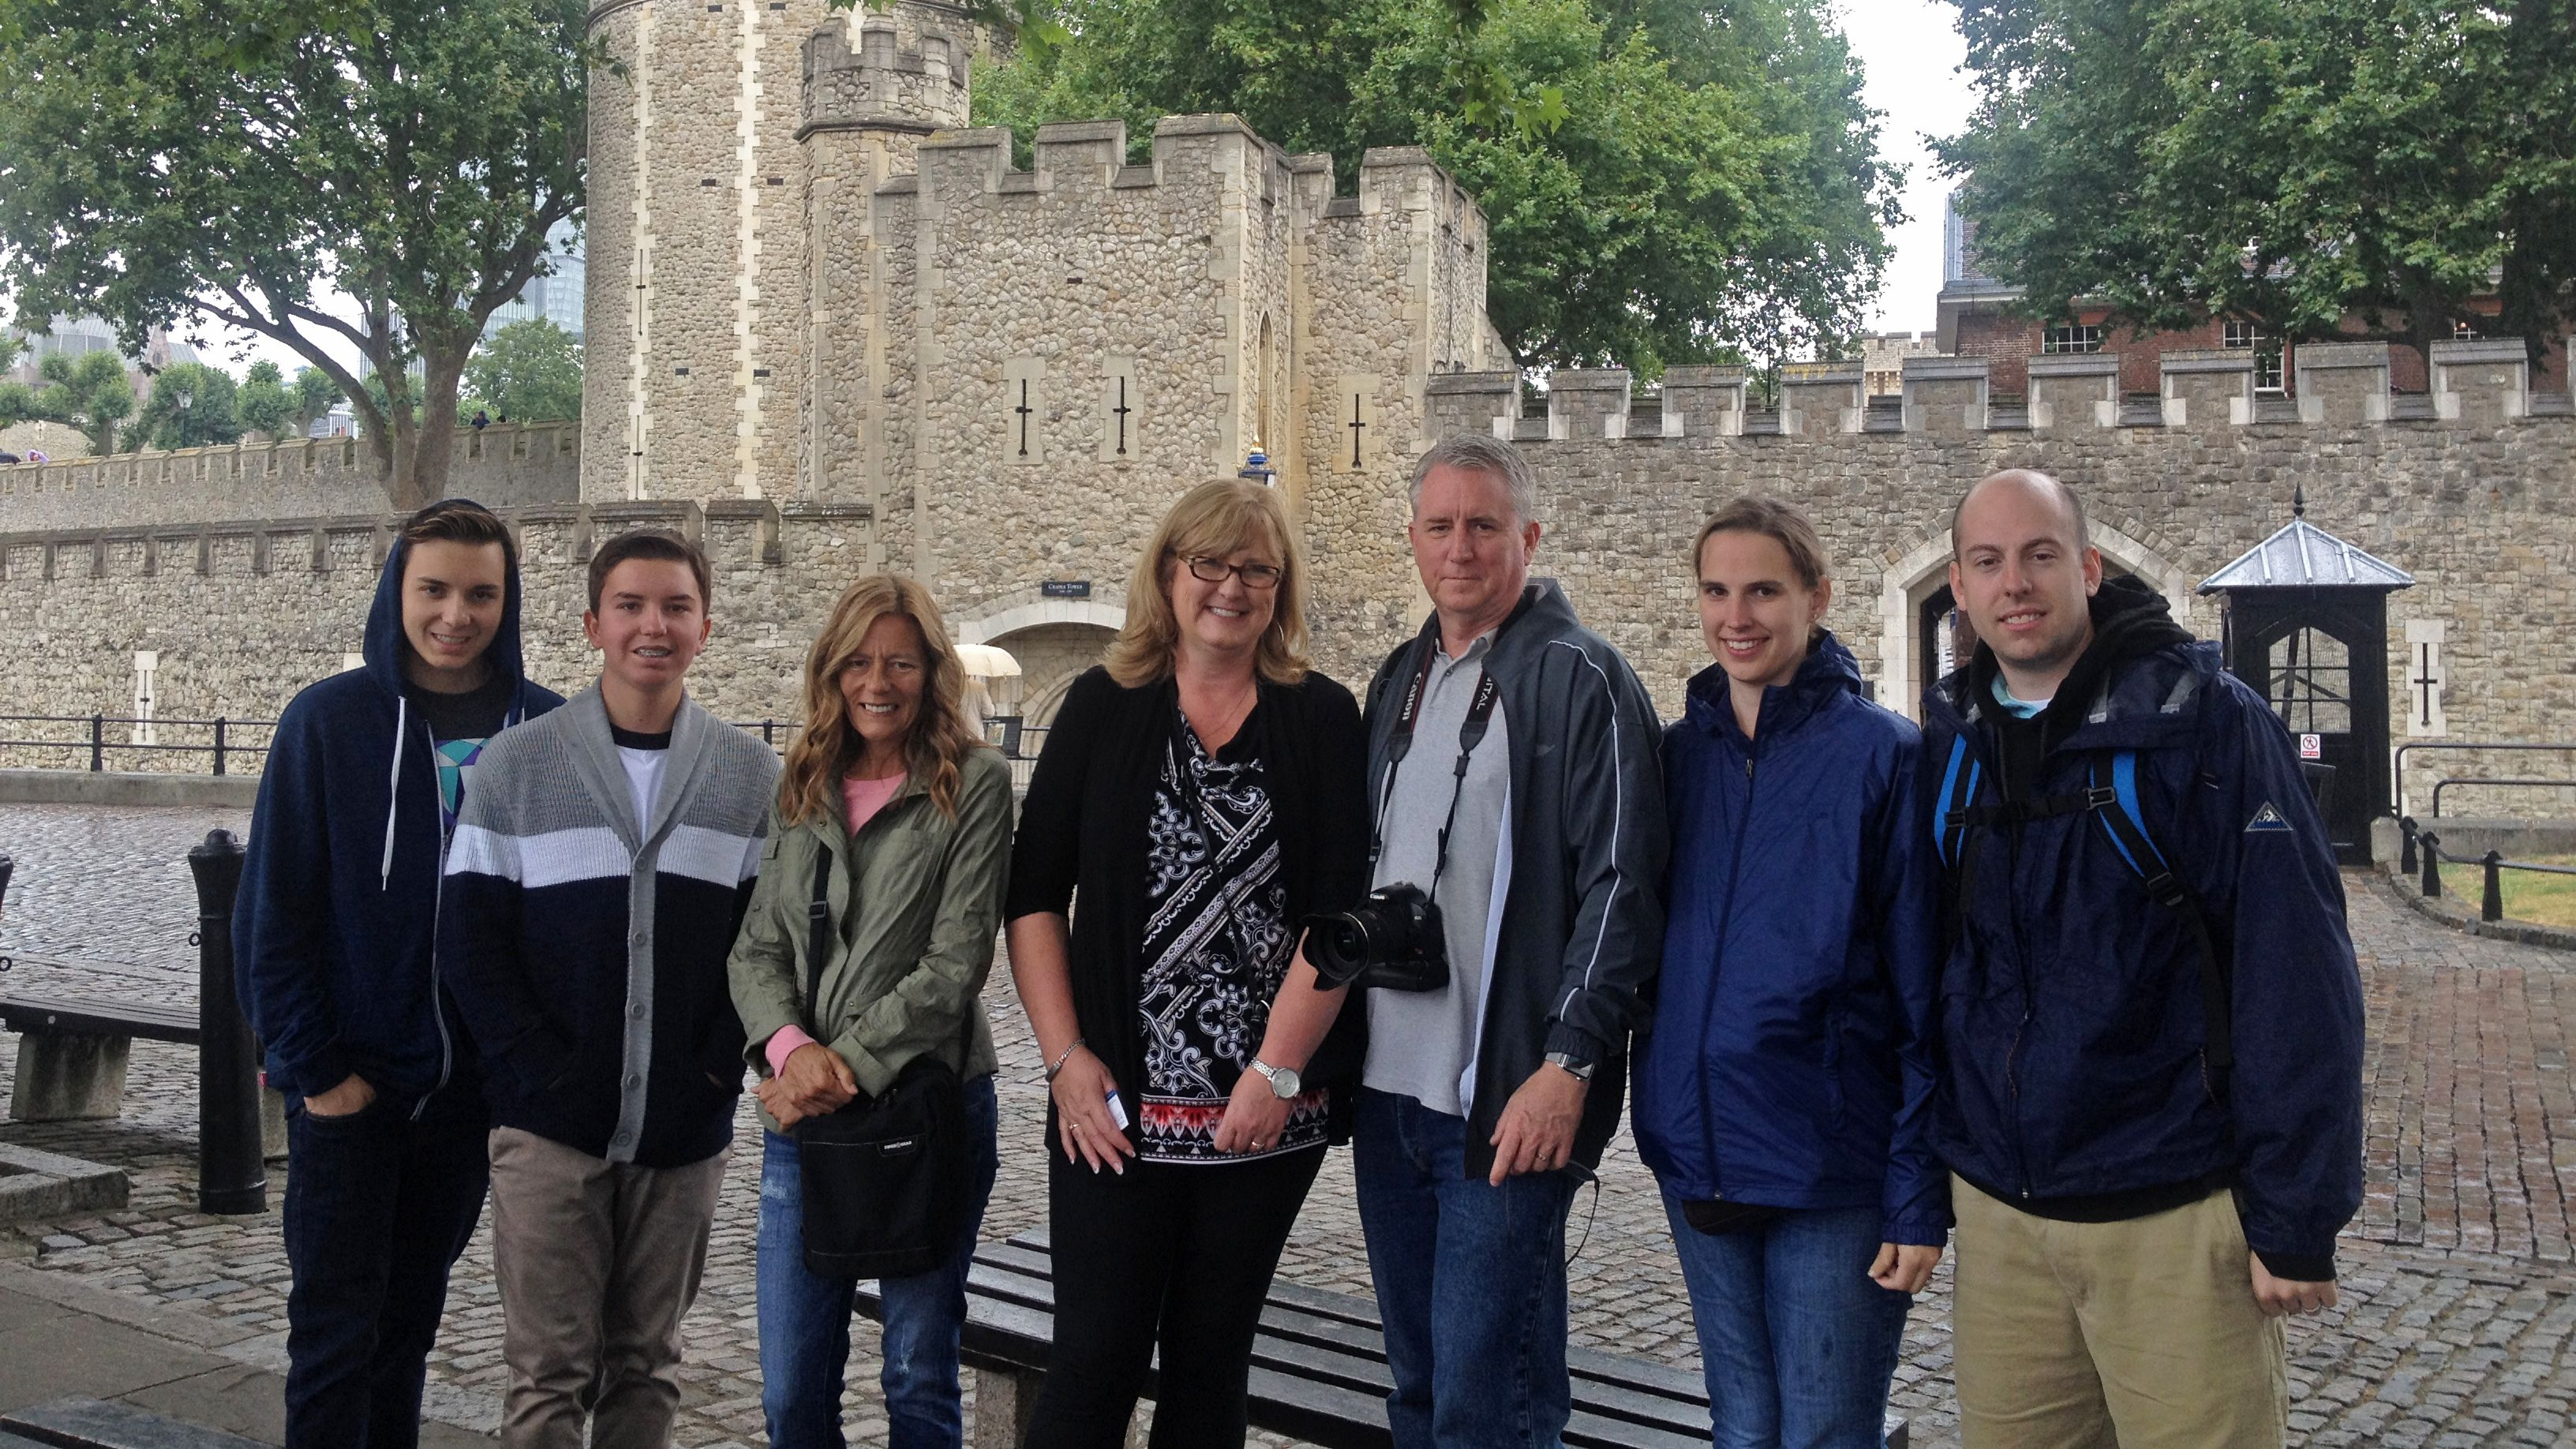 family posing at tower of london